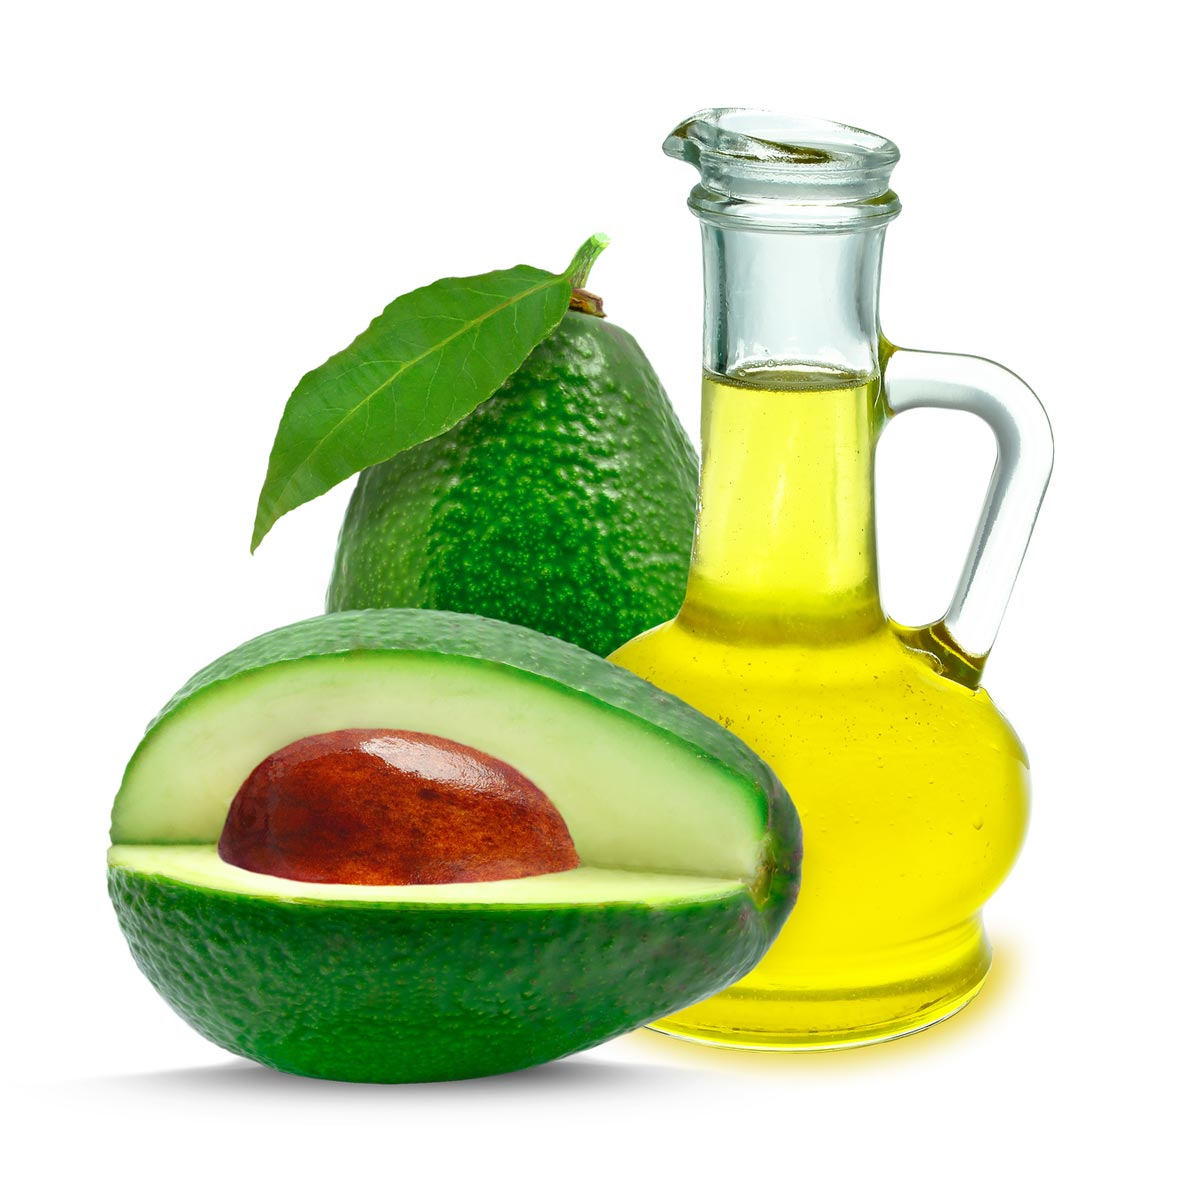 Oil and avocado for hair – separately or together, both are of useful help for natural hair care.